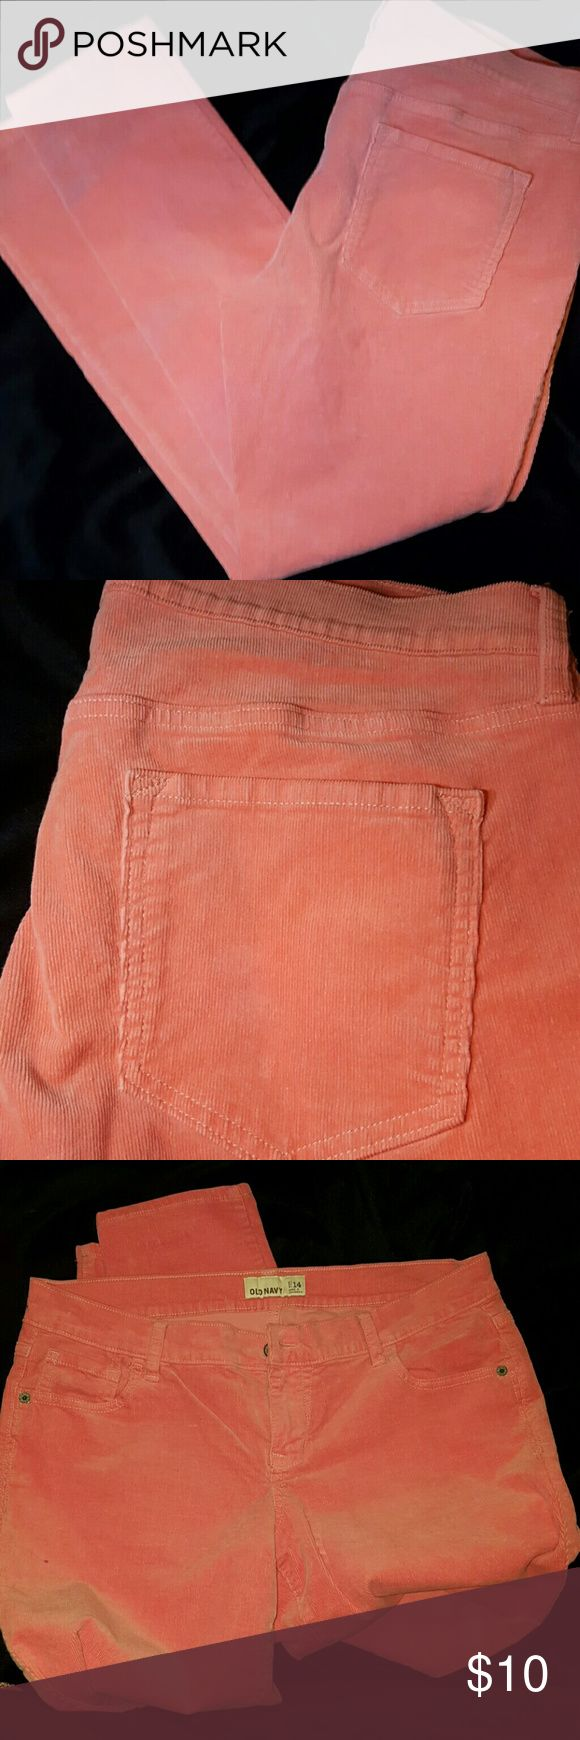 Old Navy Salmon pink Corduroy pants Great condition with one tiny imperfection as shown in last pic.  I wore them once so not even sure how it got the nic. It's not a hole just an imperfection in the corduroy fabric.  Very comfy and gorgeous salmon pink color.  Smoke free home Old Navy Pants Skinny